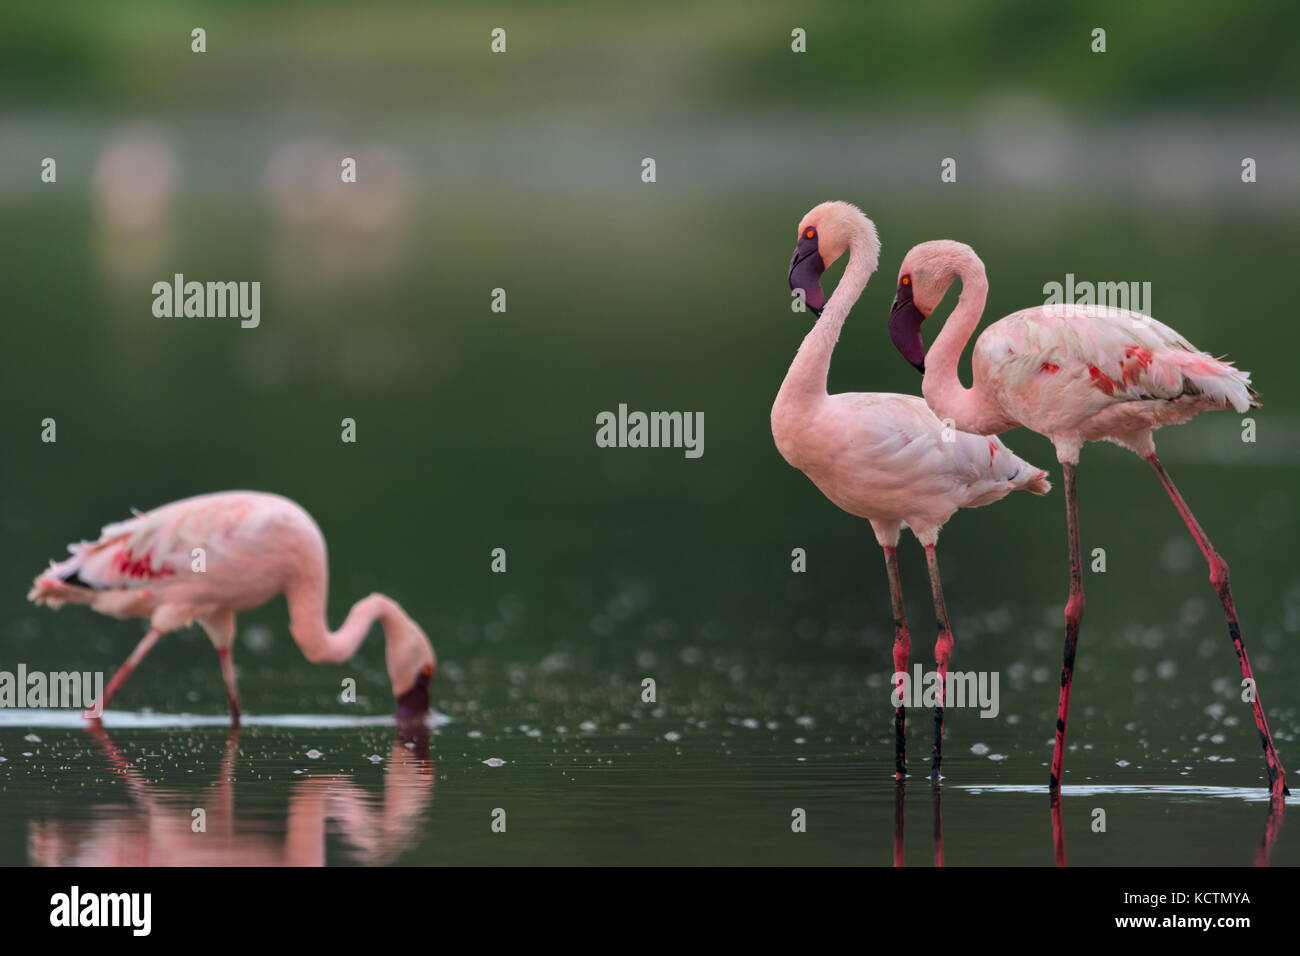 Lesser flamingo with clean background - Stock Image